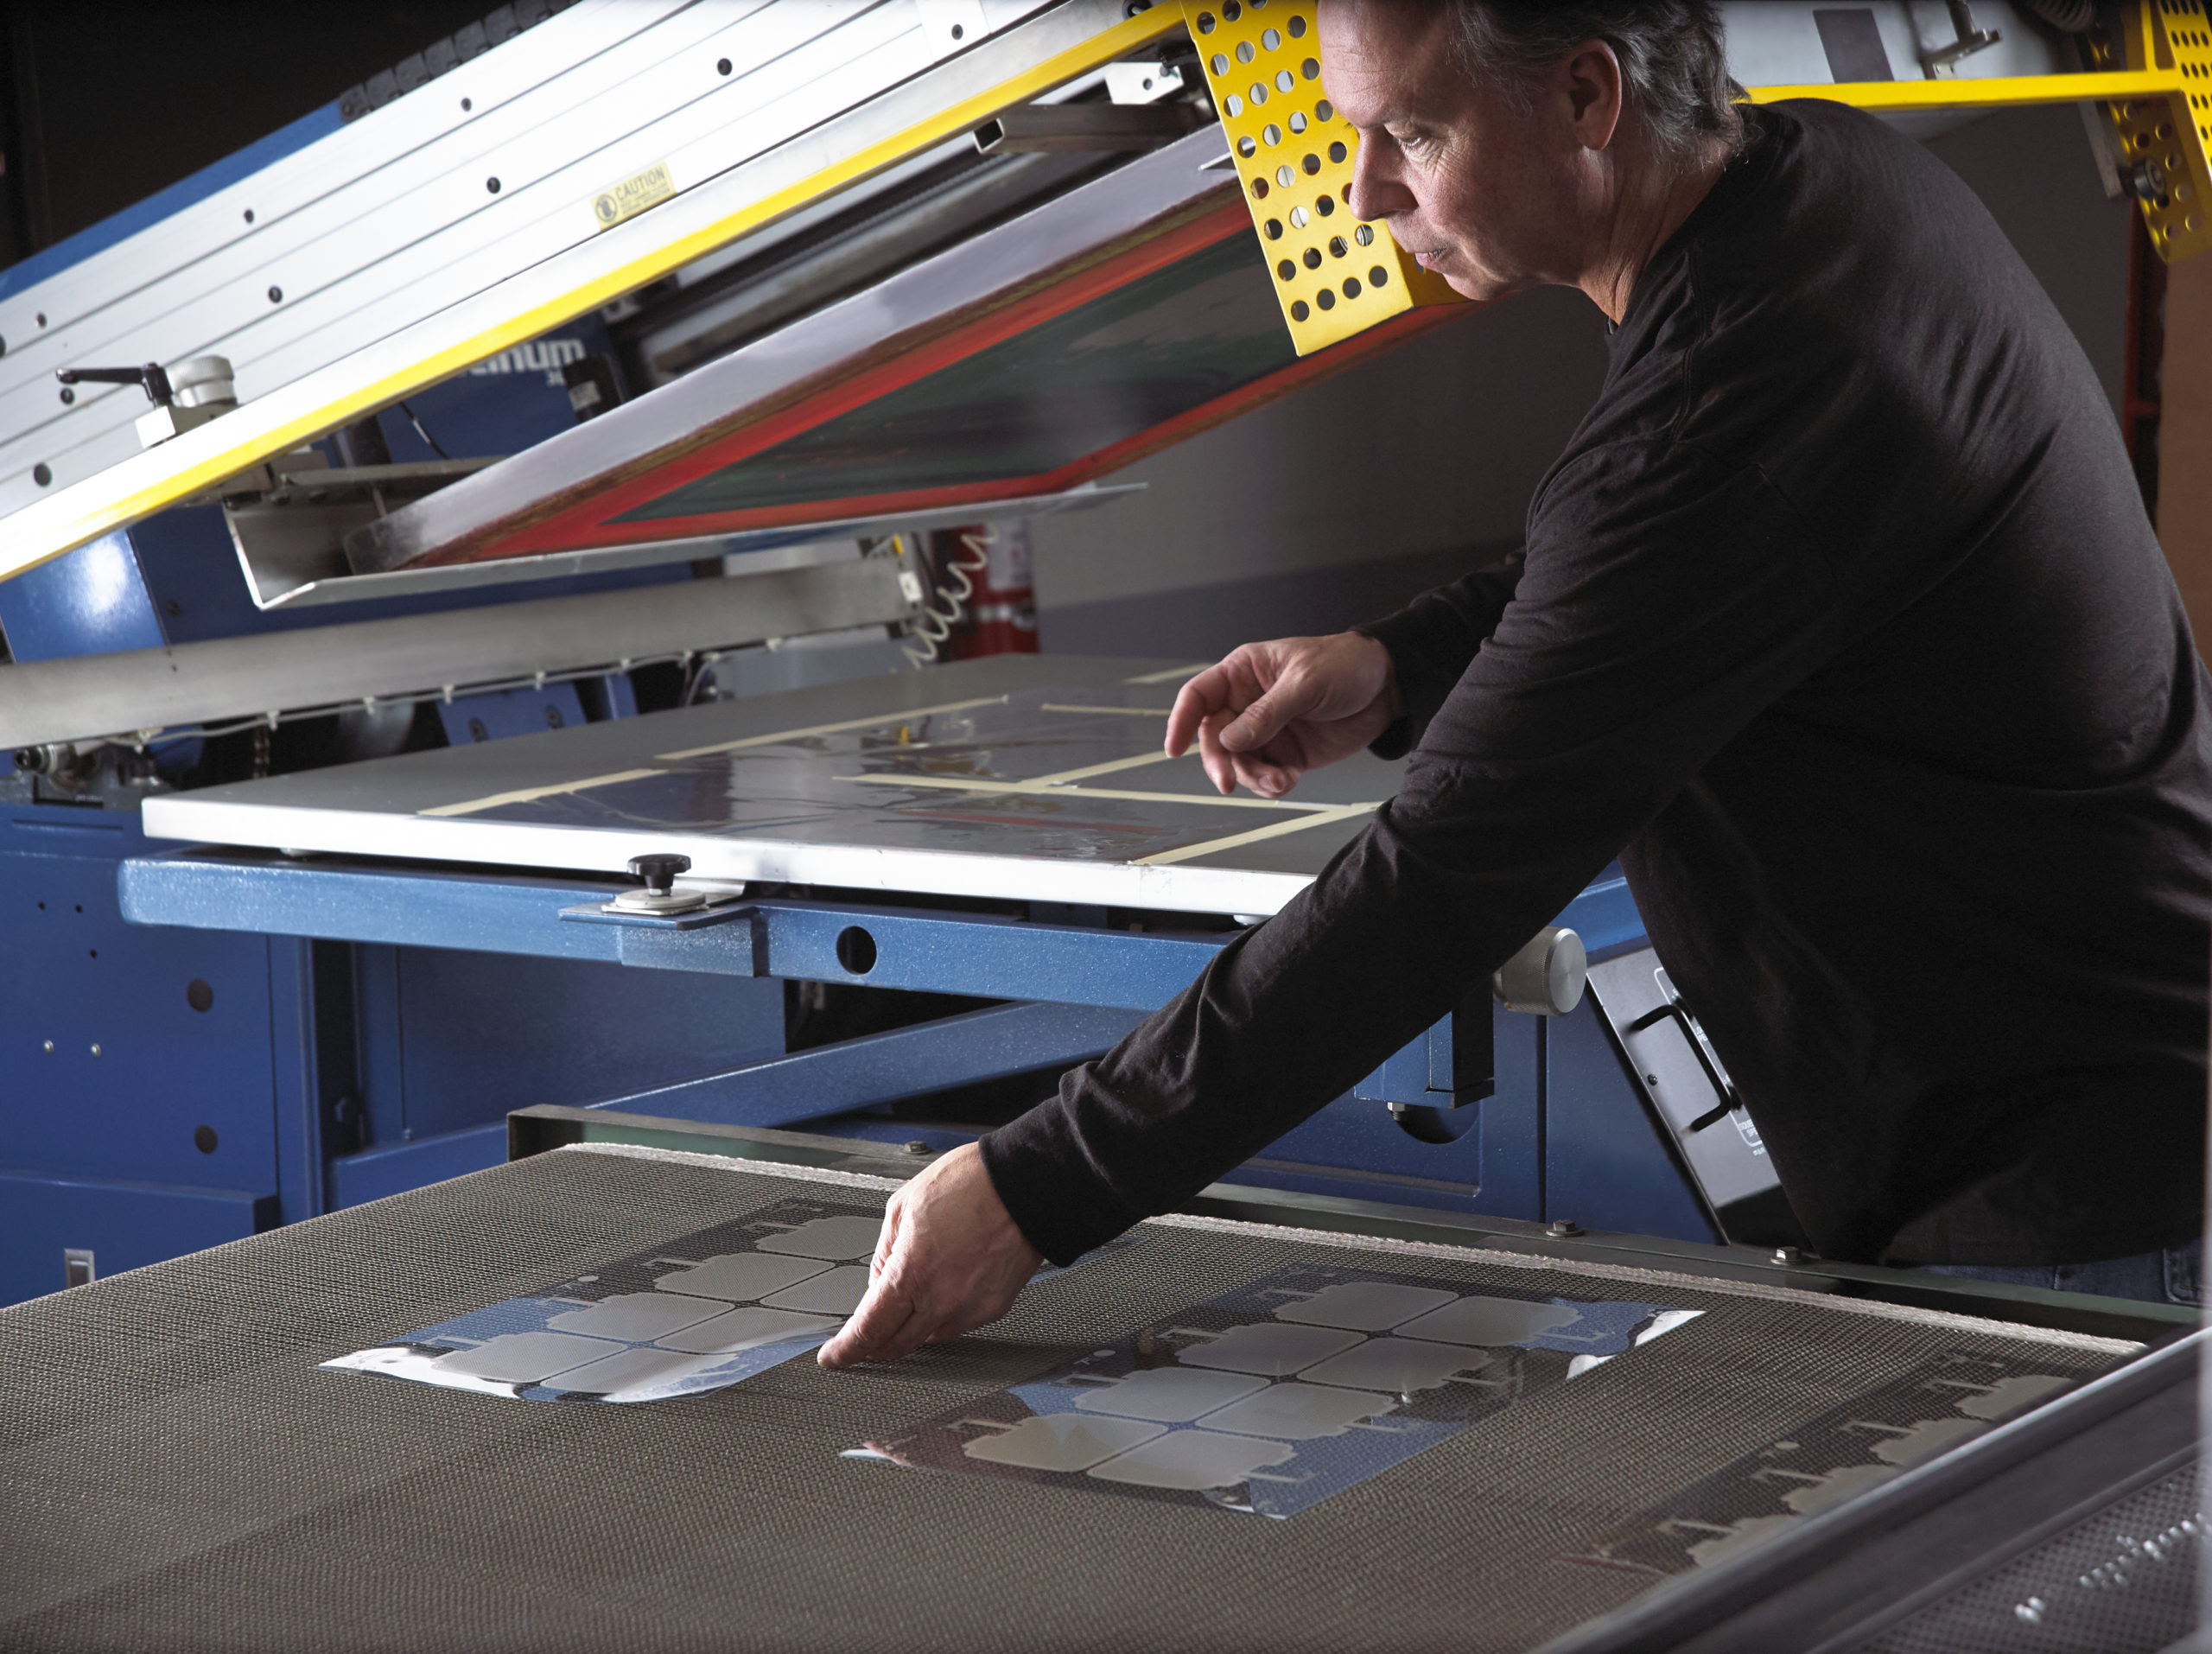 Technician placing membrane printed from silkscreen machinery on dryer belt